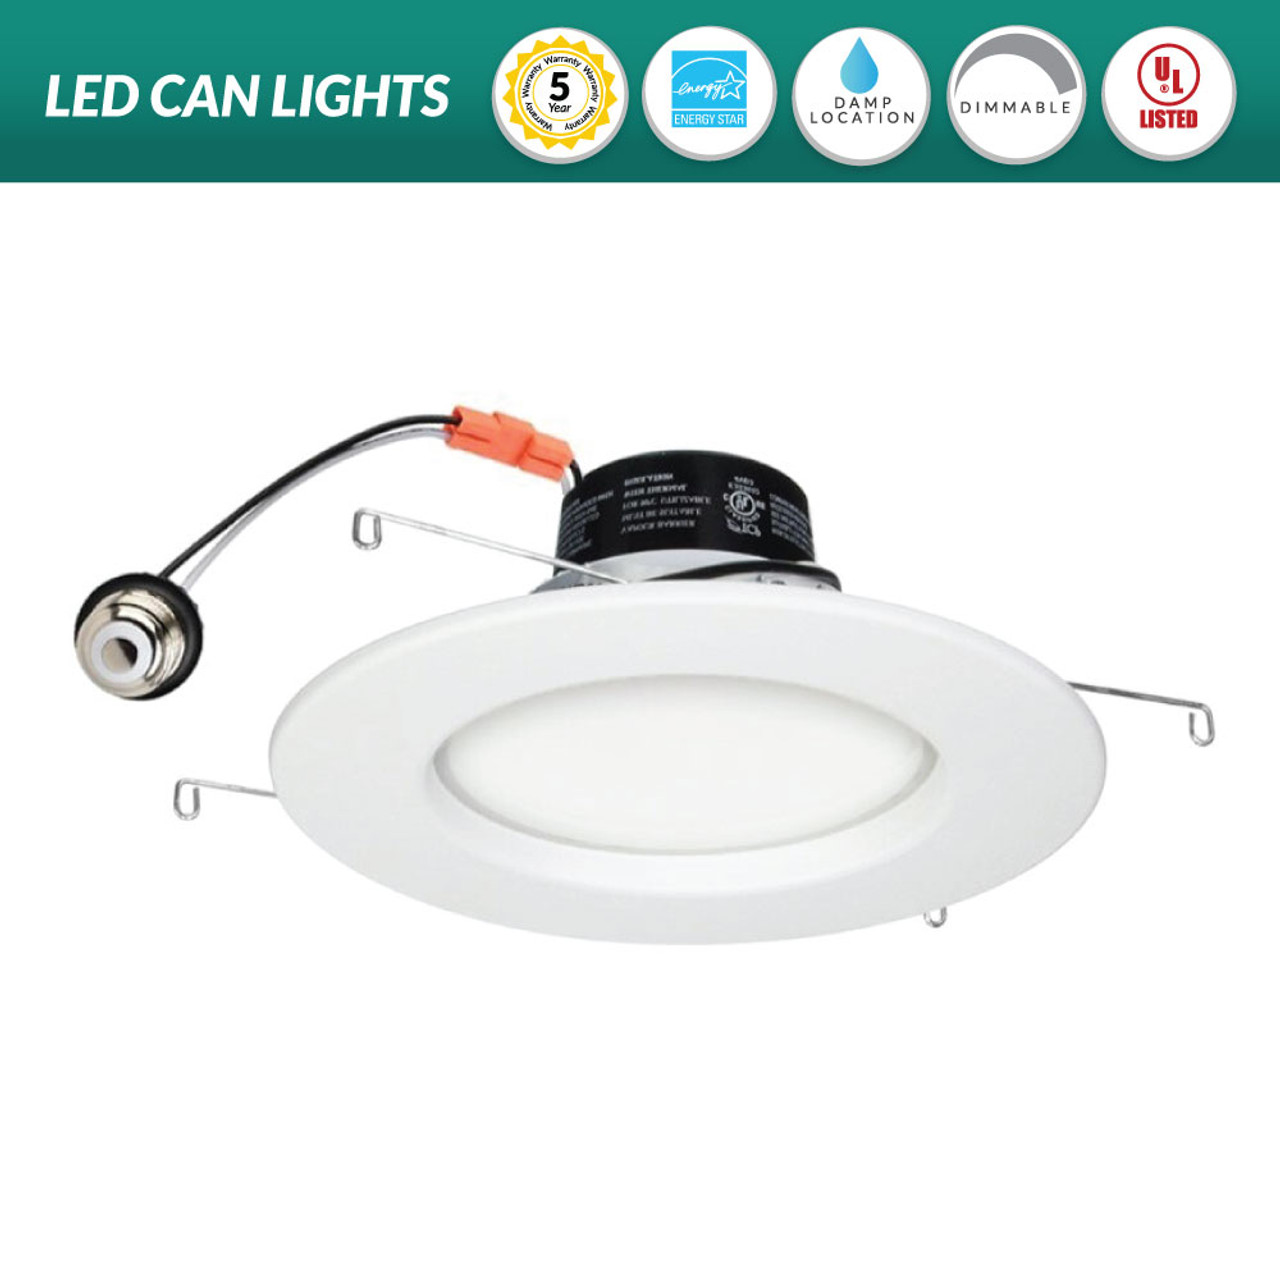 6 inch led can light recessed lighting retrofit on sale now while supplies last